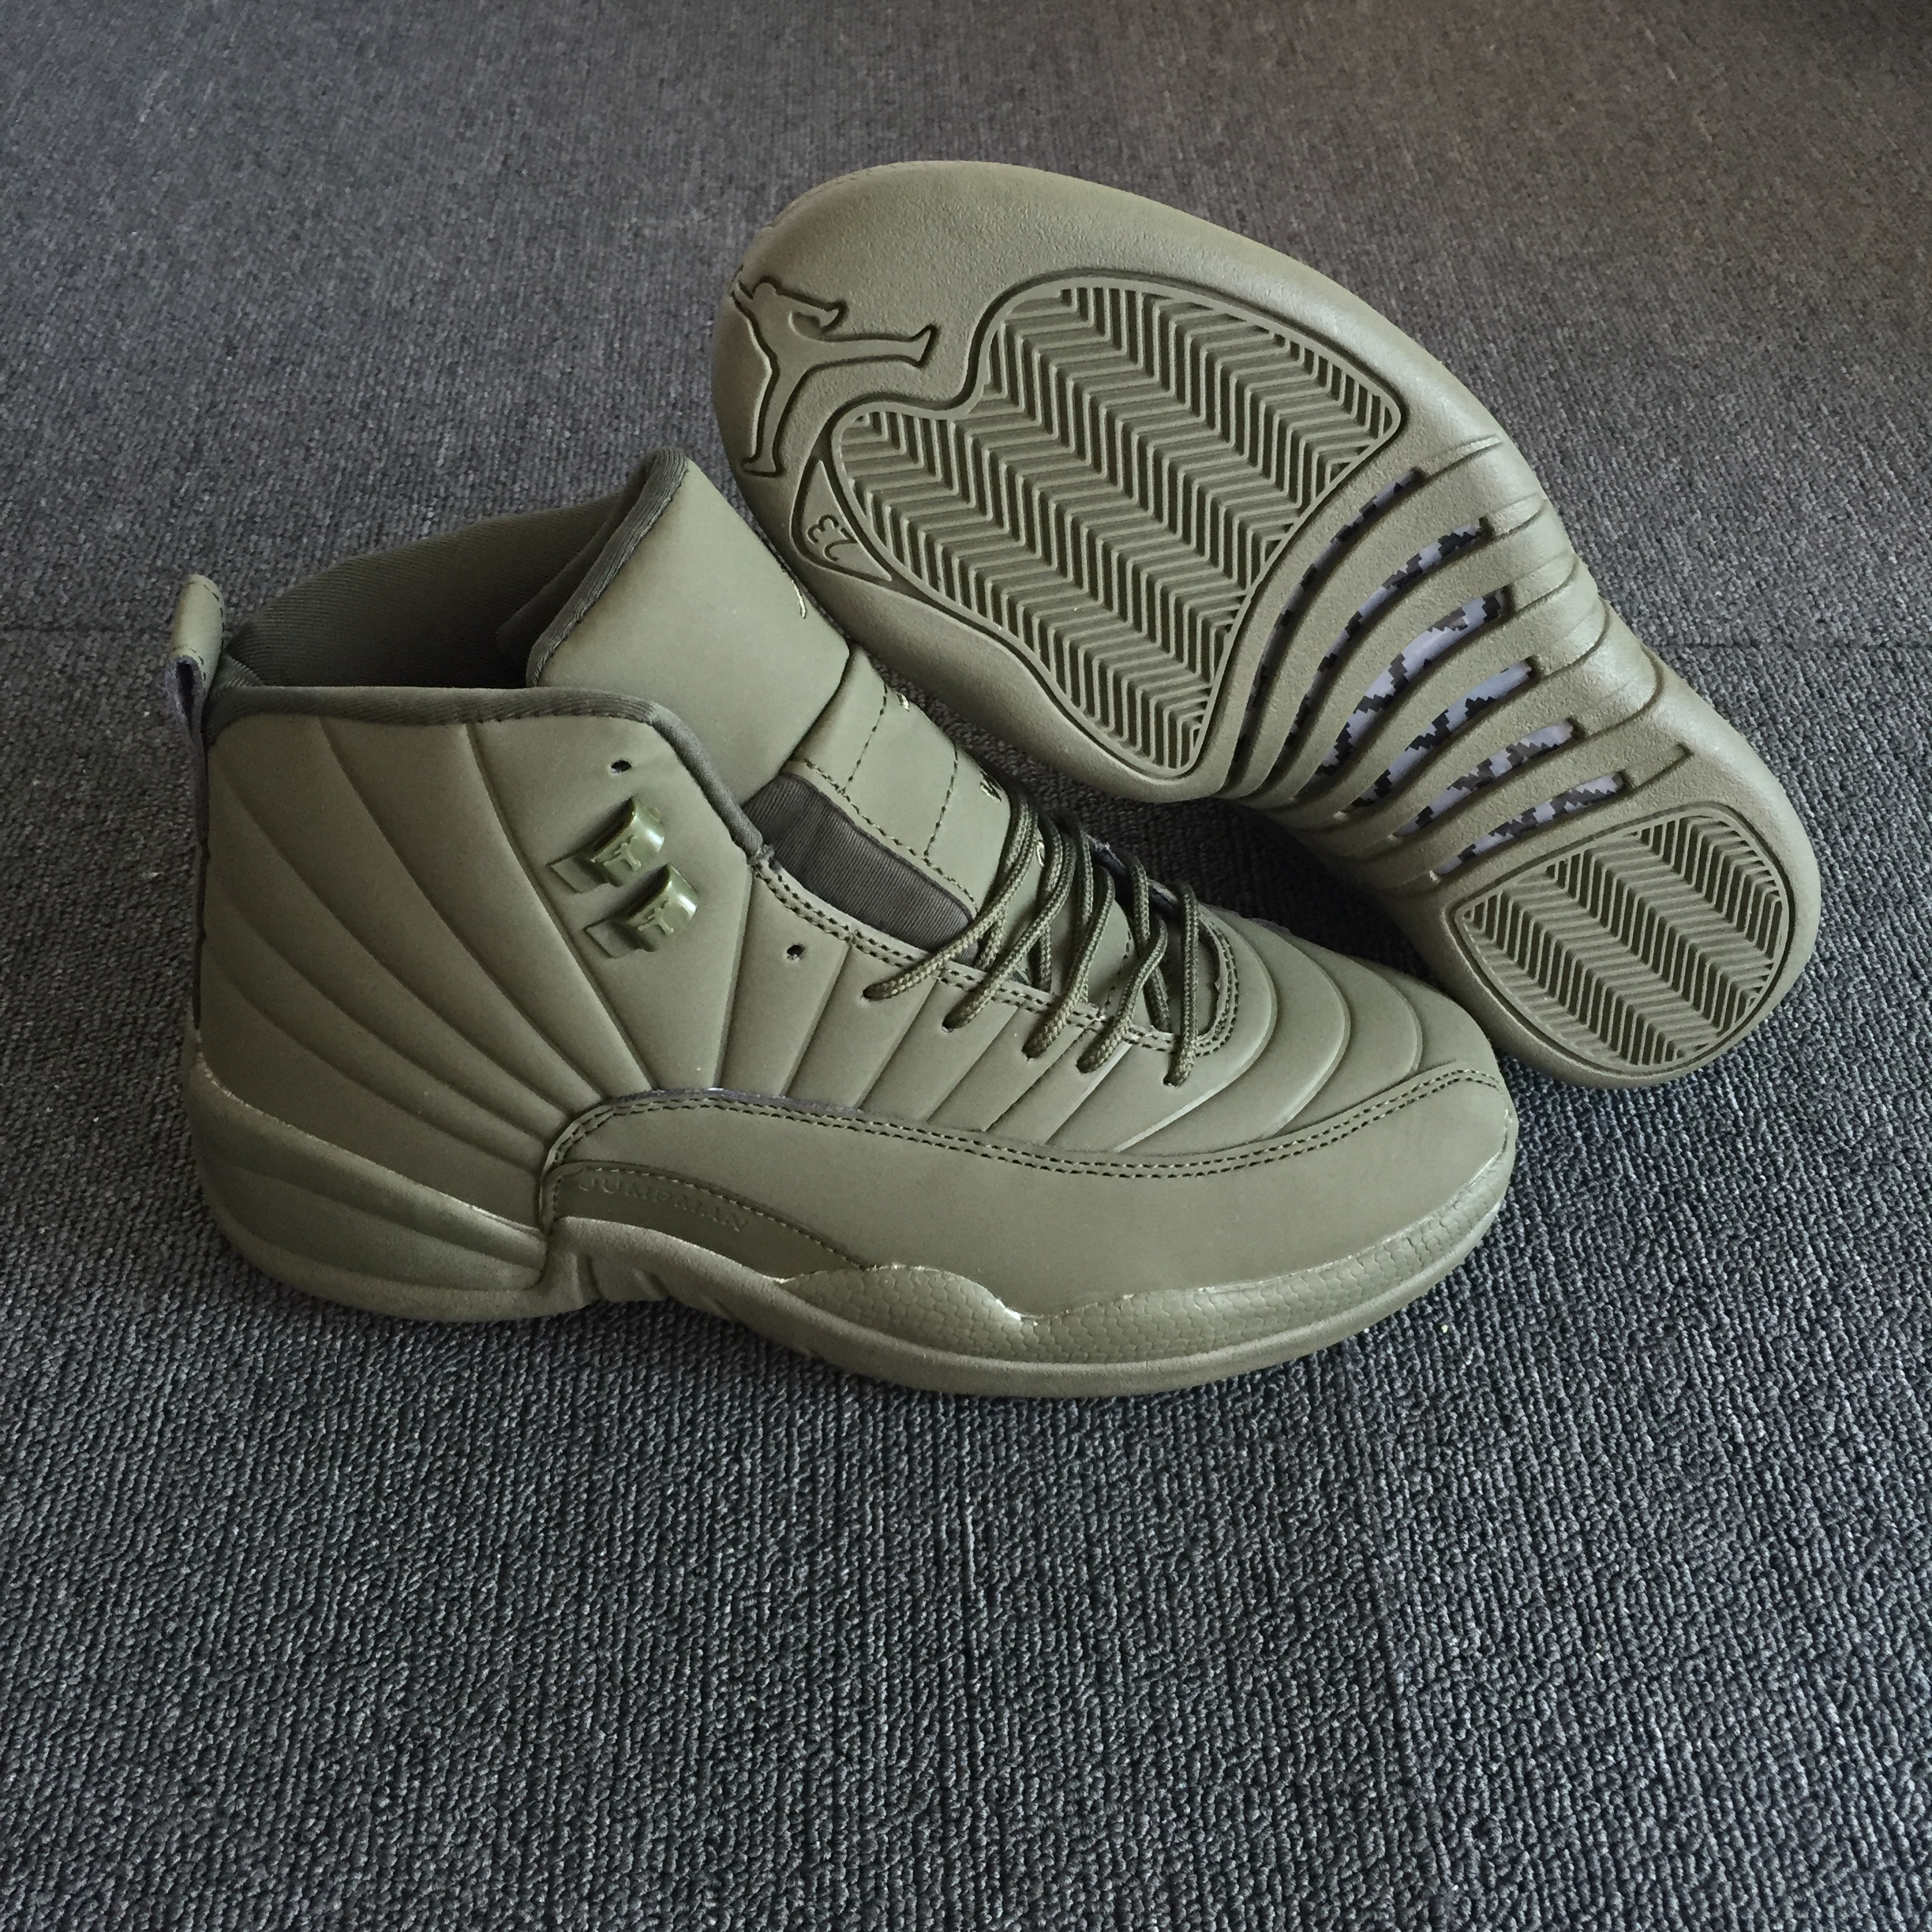 New Air Jordan 12 High Army Green Shoes